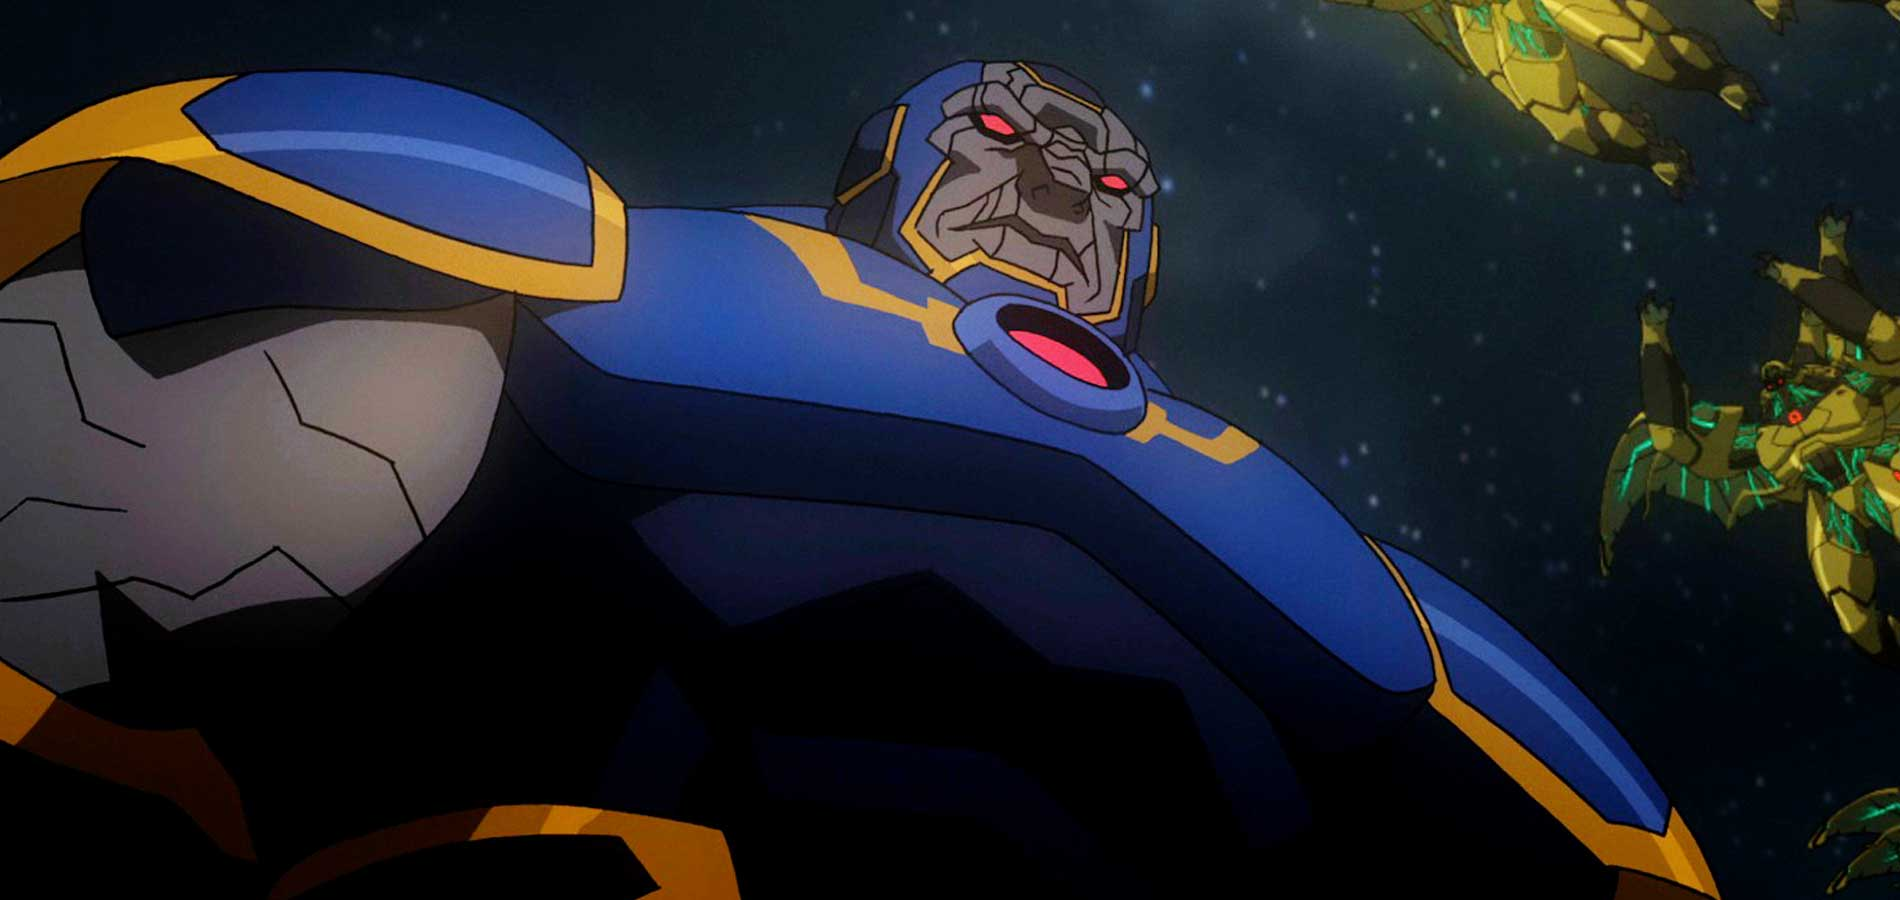 Darkseid and his army of parademons in 'Young Justice'. (Source: IMDB)